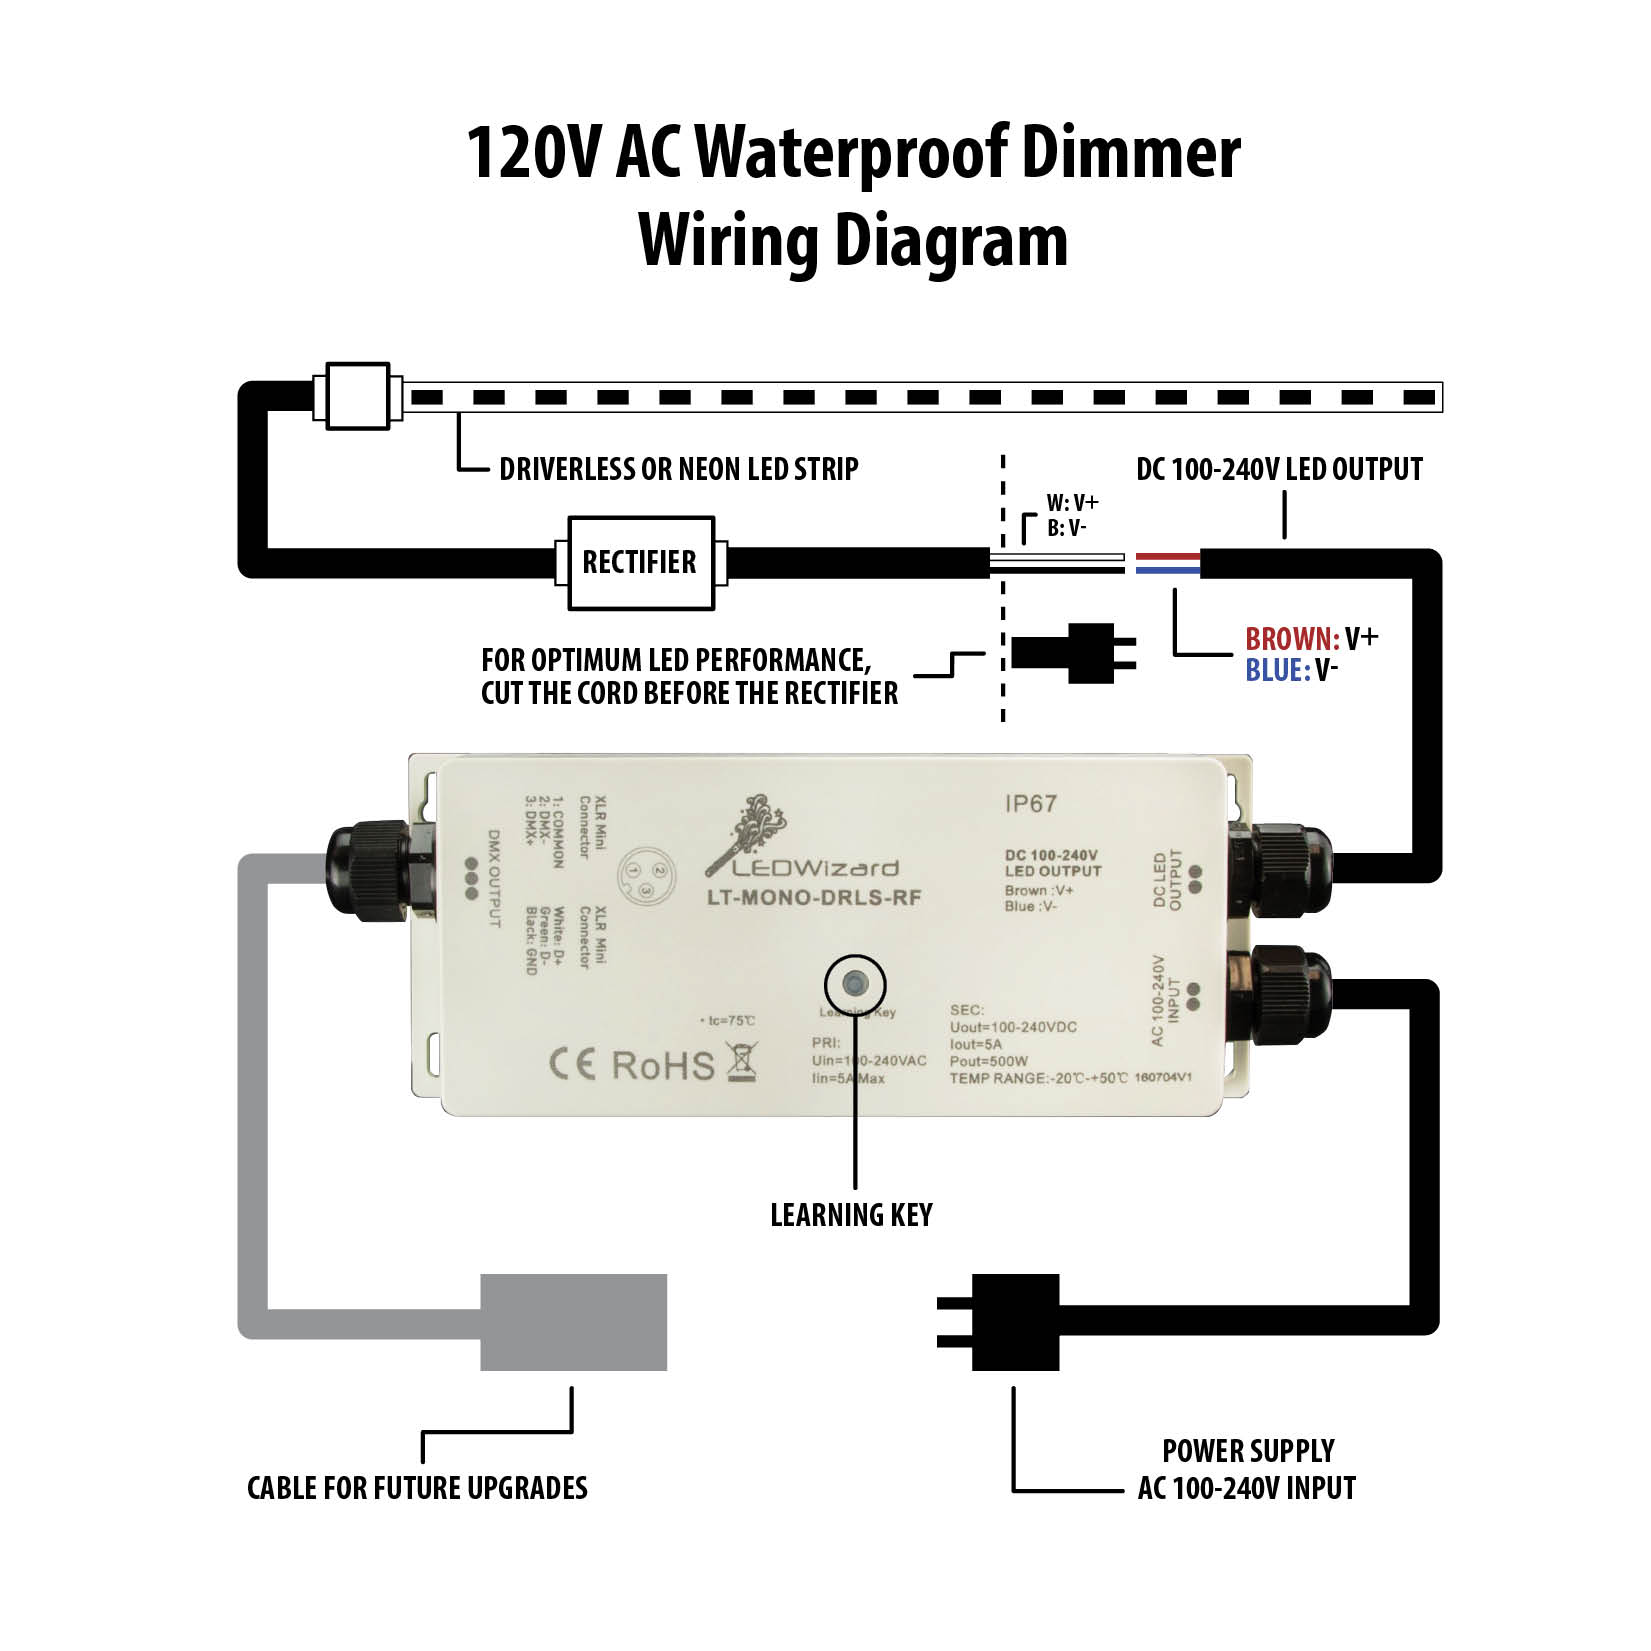 Ac Aceca Wiring Diagram : V ac waterproof dimmer receiver